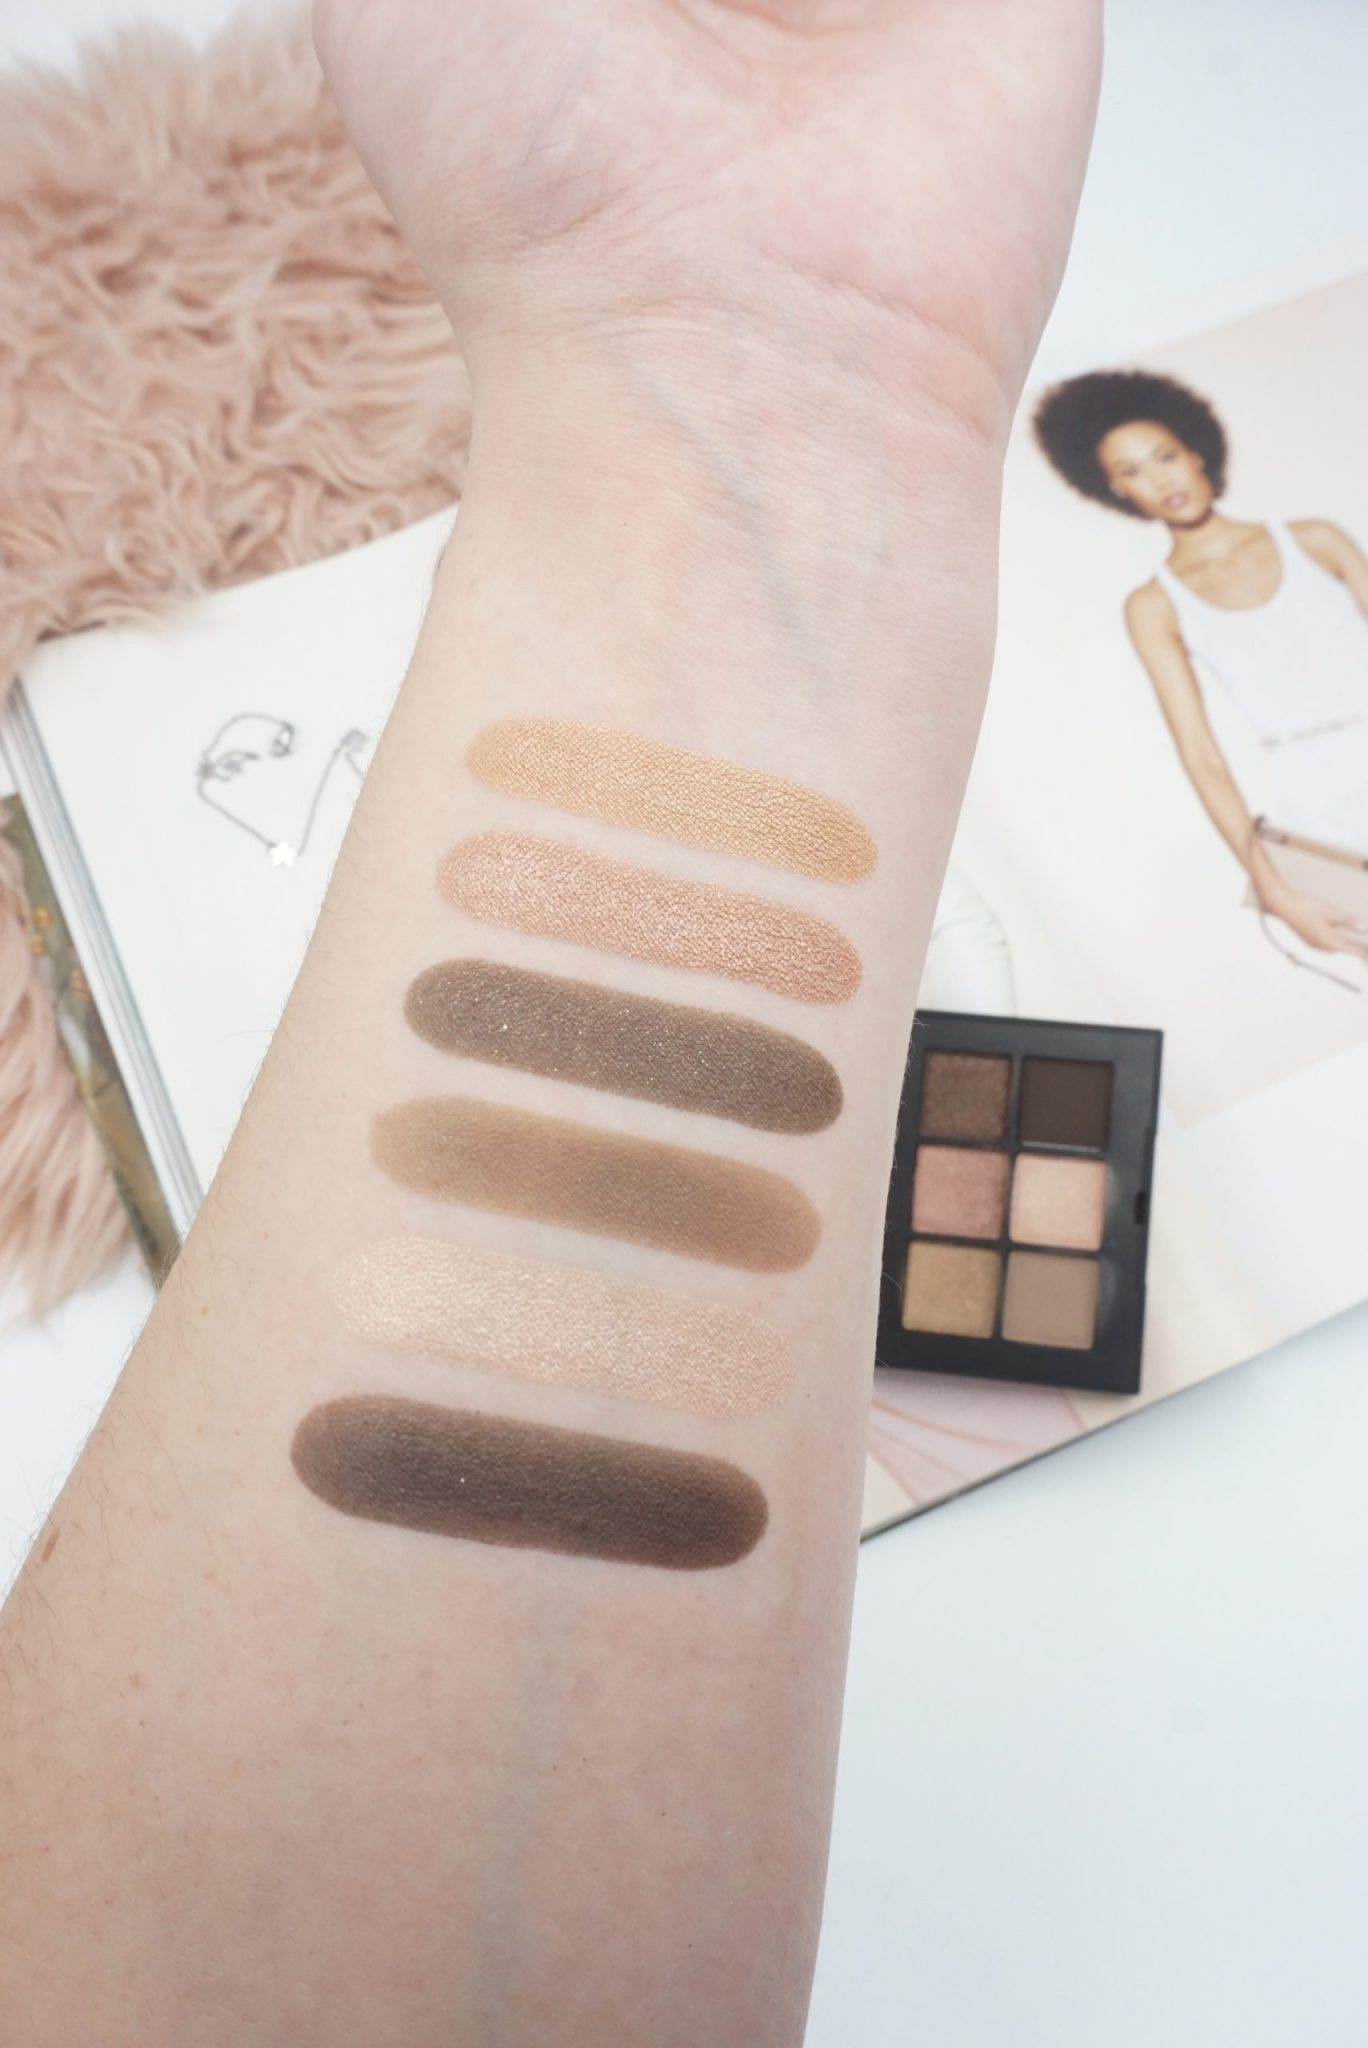 NARS Voyageur Eyeshadow Palette in Suede Review ⋆ Beautymone